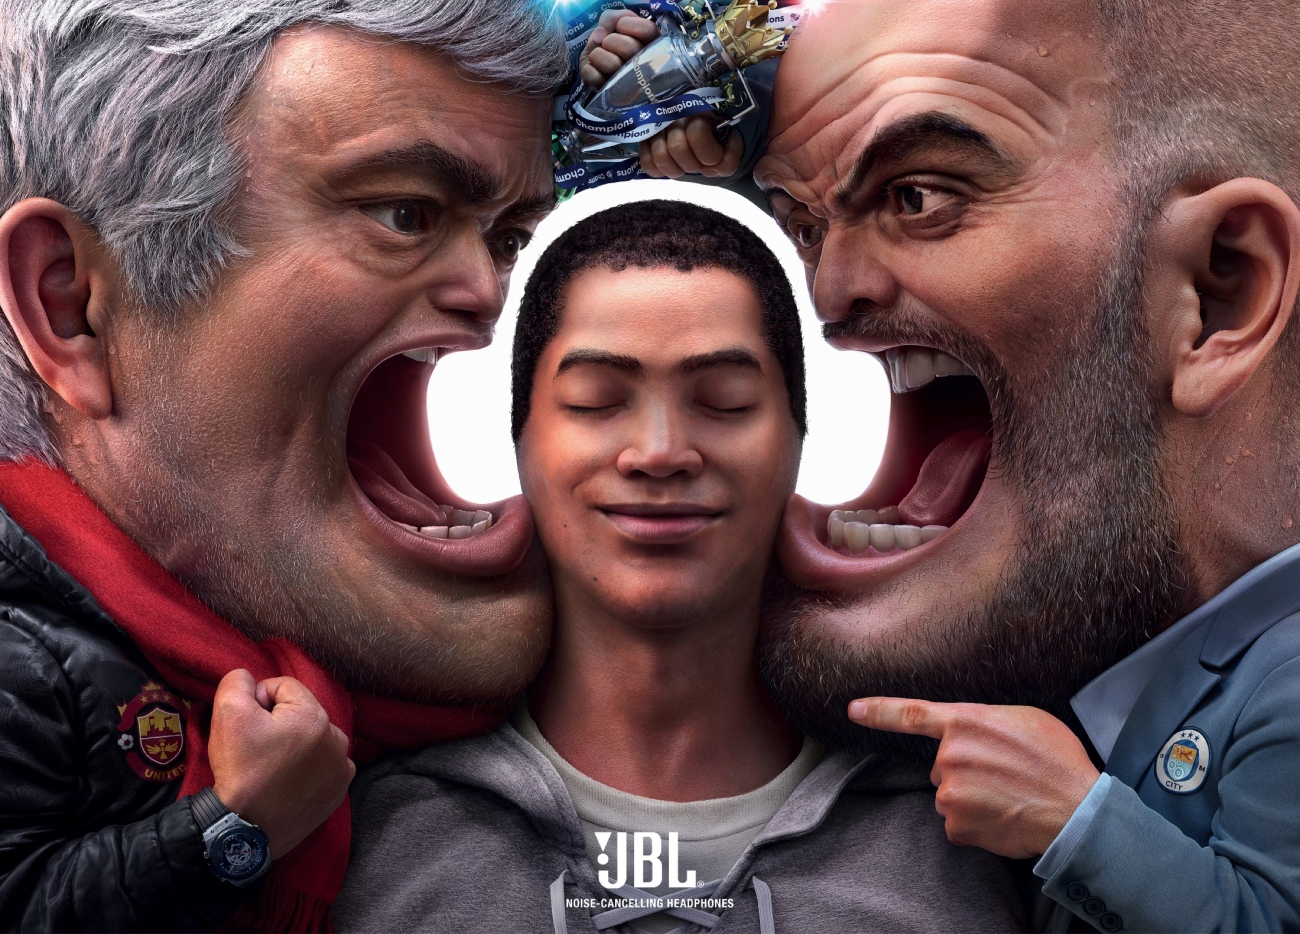 jbl headphone ad mourinho guardiola